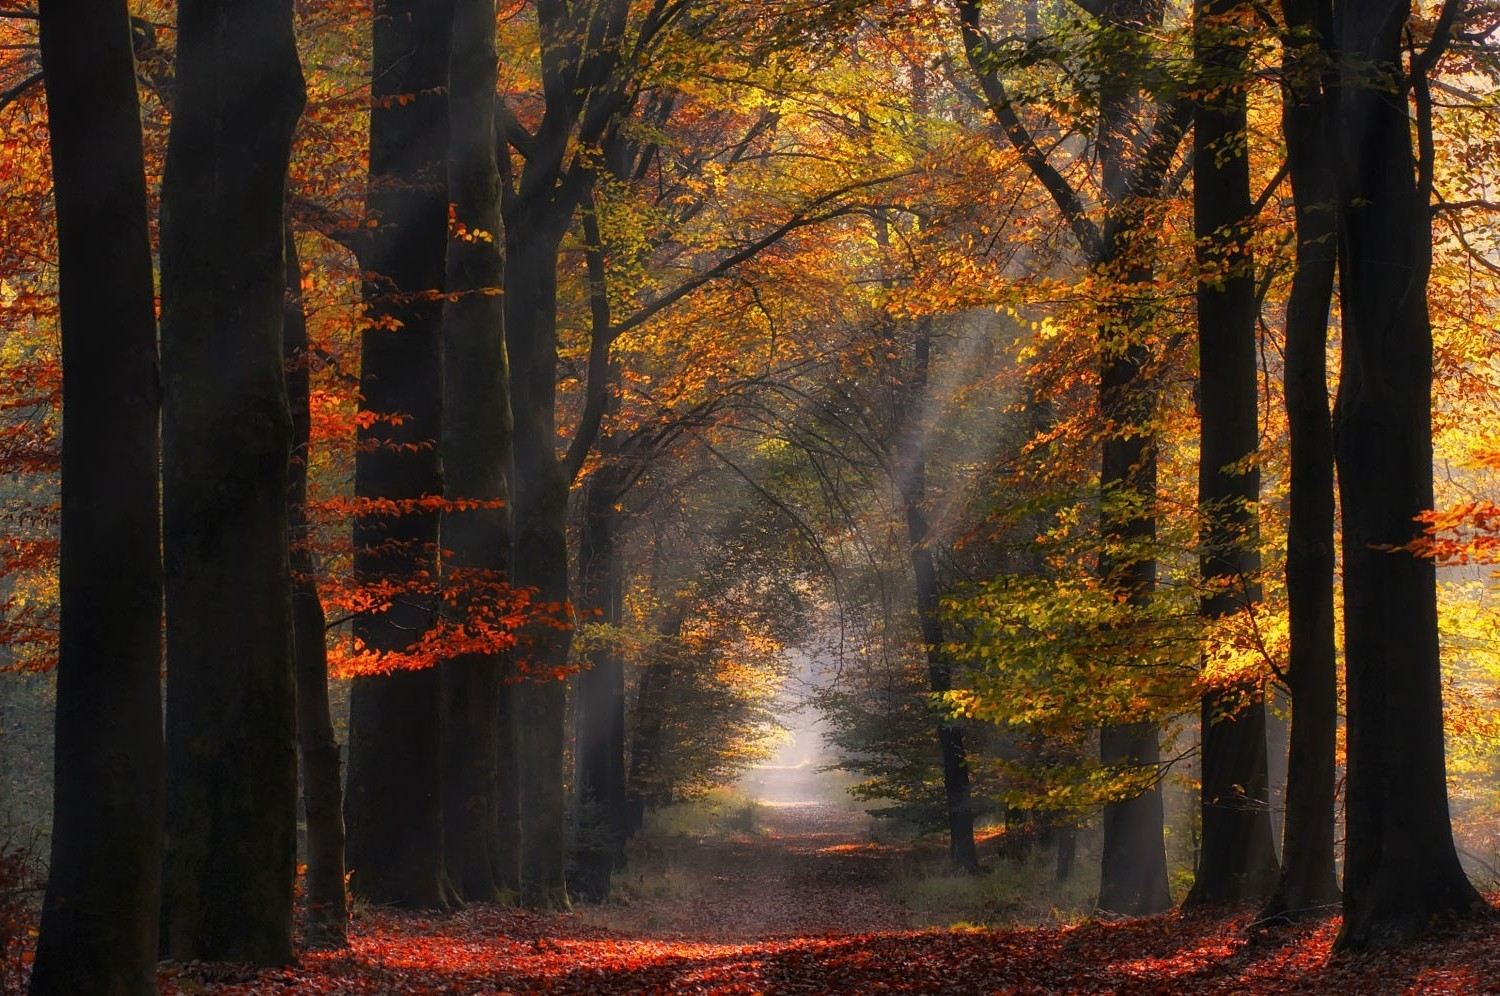 Fall Autumn Wallpaper Nature Landscape Colorful Forest Path Sun Rays Mist